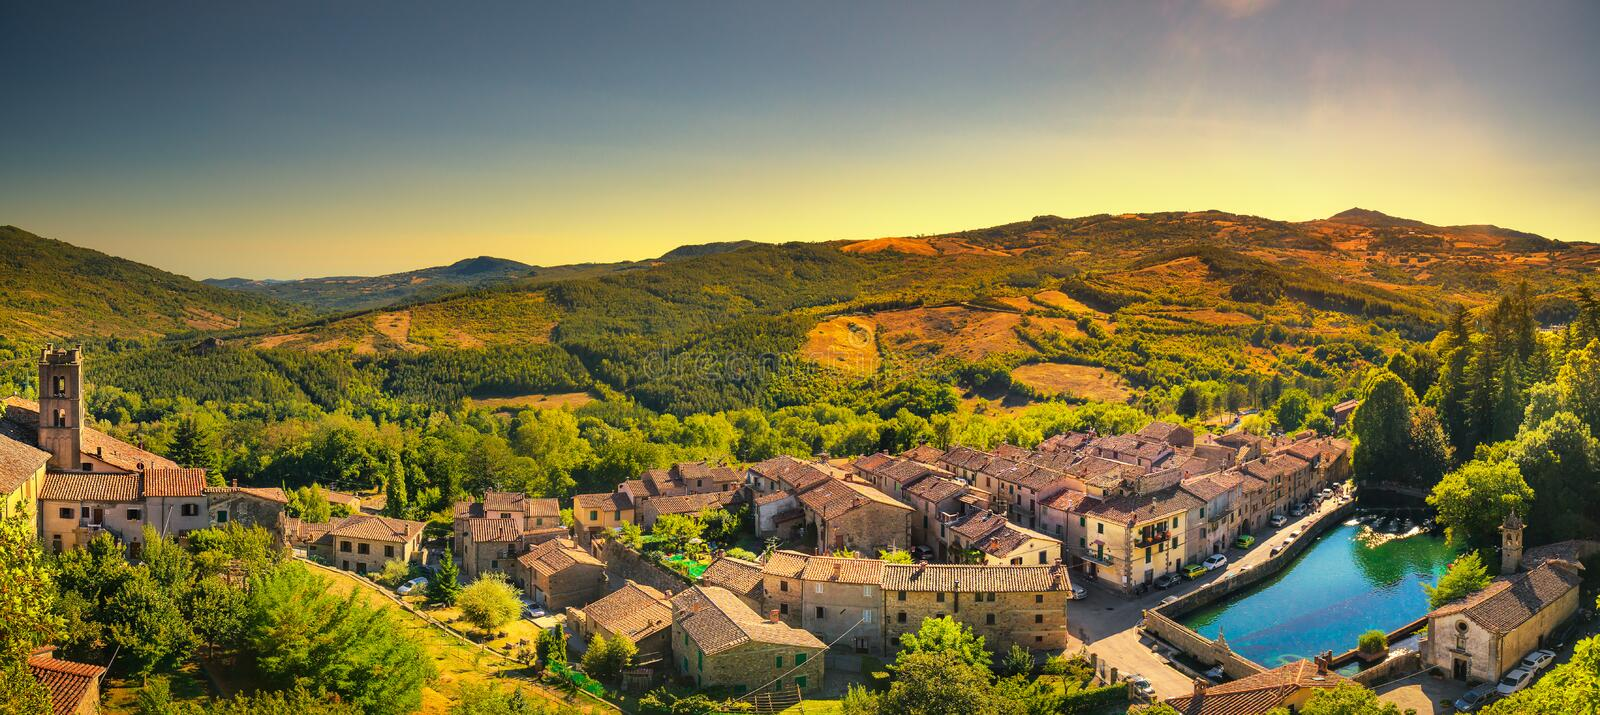 Tuscany, Santa Fiora medieval village, peschiera and church. Mon. Tuscany, Arcidosso medieval village and tower. Monte Amiata, Grosseto, Italy, Europe royalty free stock photography